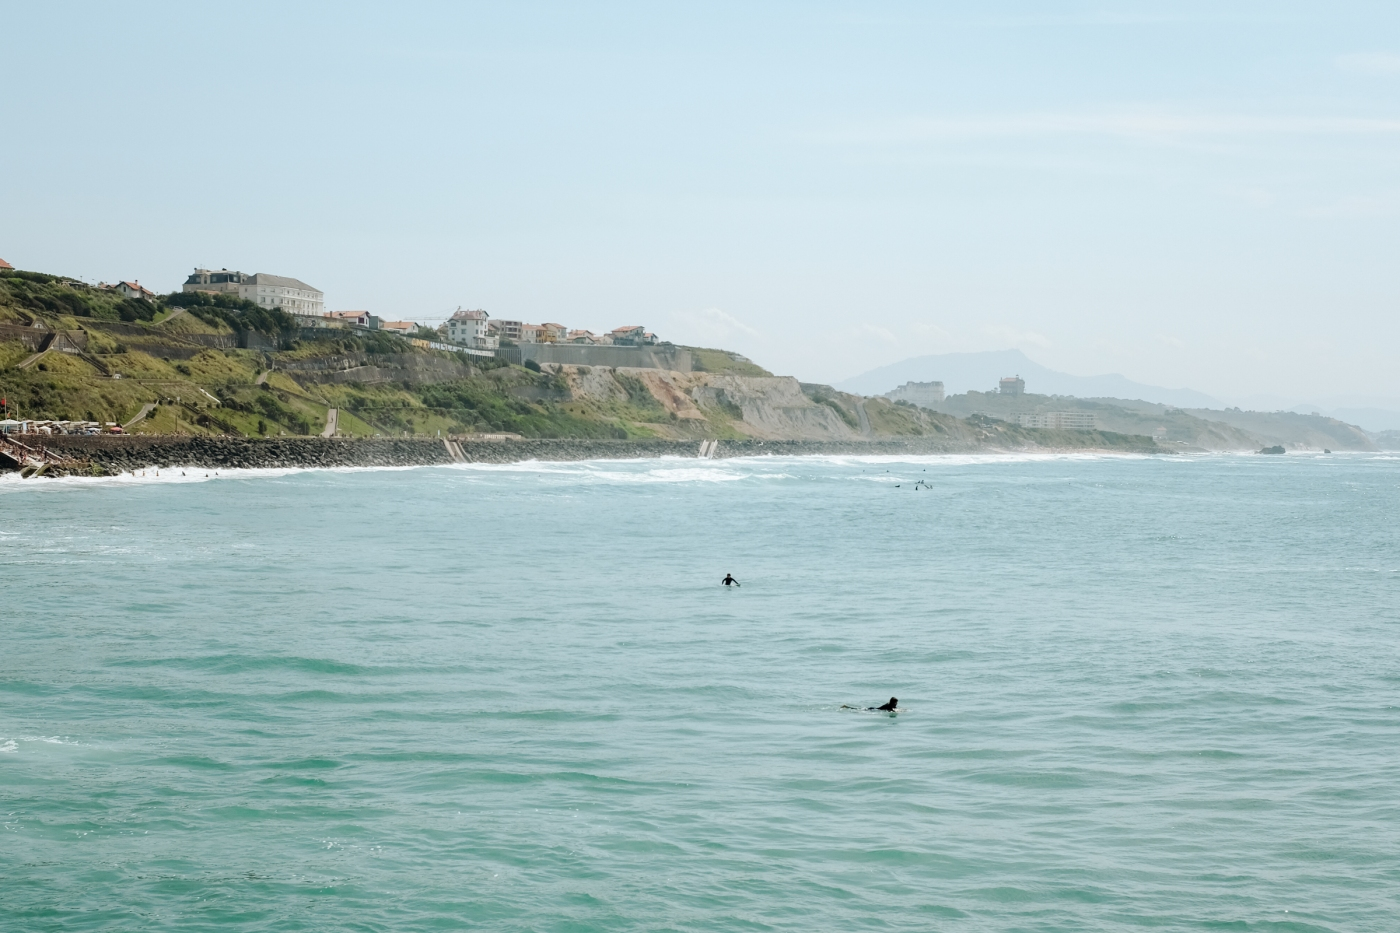 Surfers paddling near the coast on a sunny day